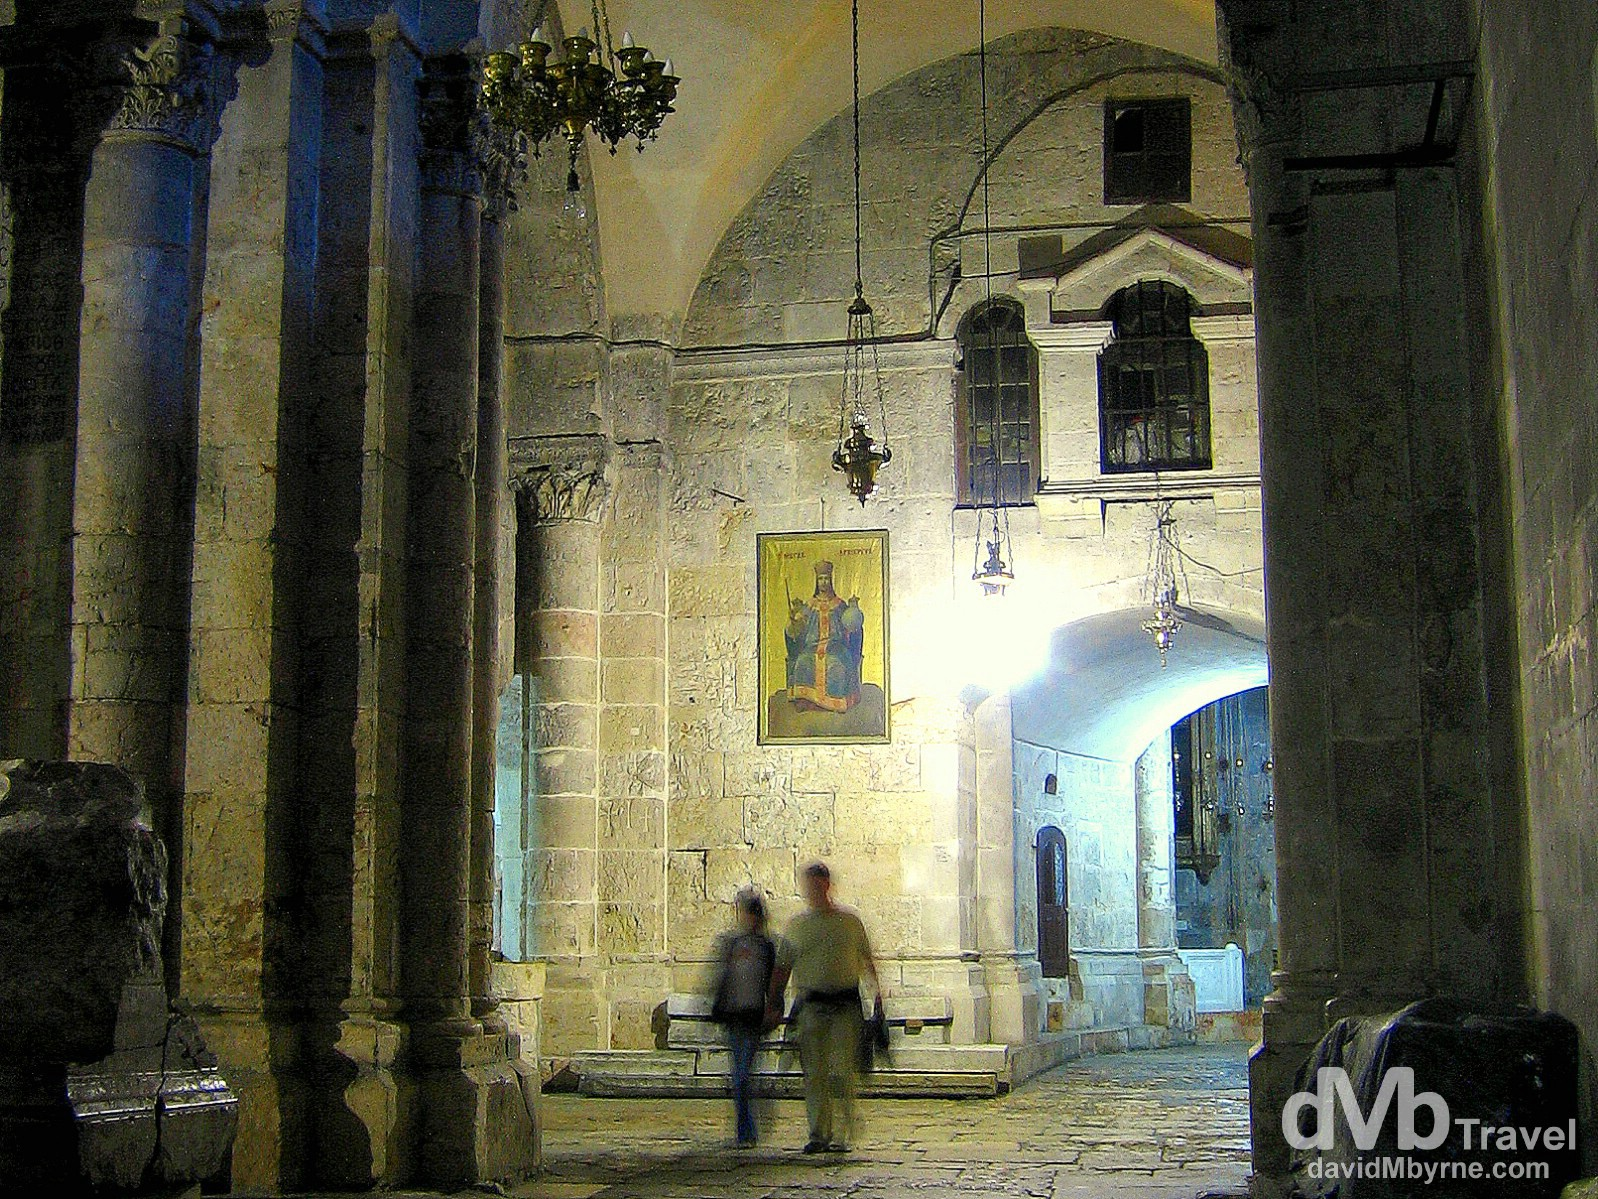 A section of the interior of the Church of the Holy Sepulchre, Old City, Jerusalem, Israel. May 2, 2008.